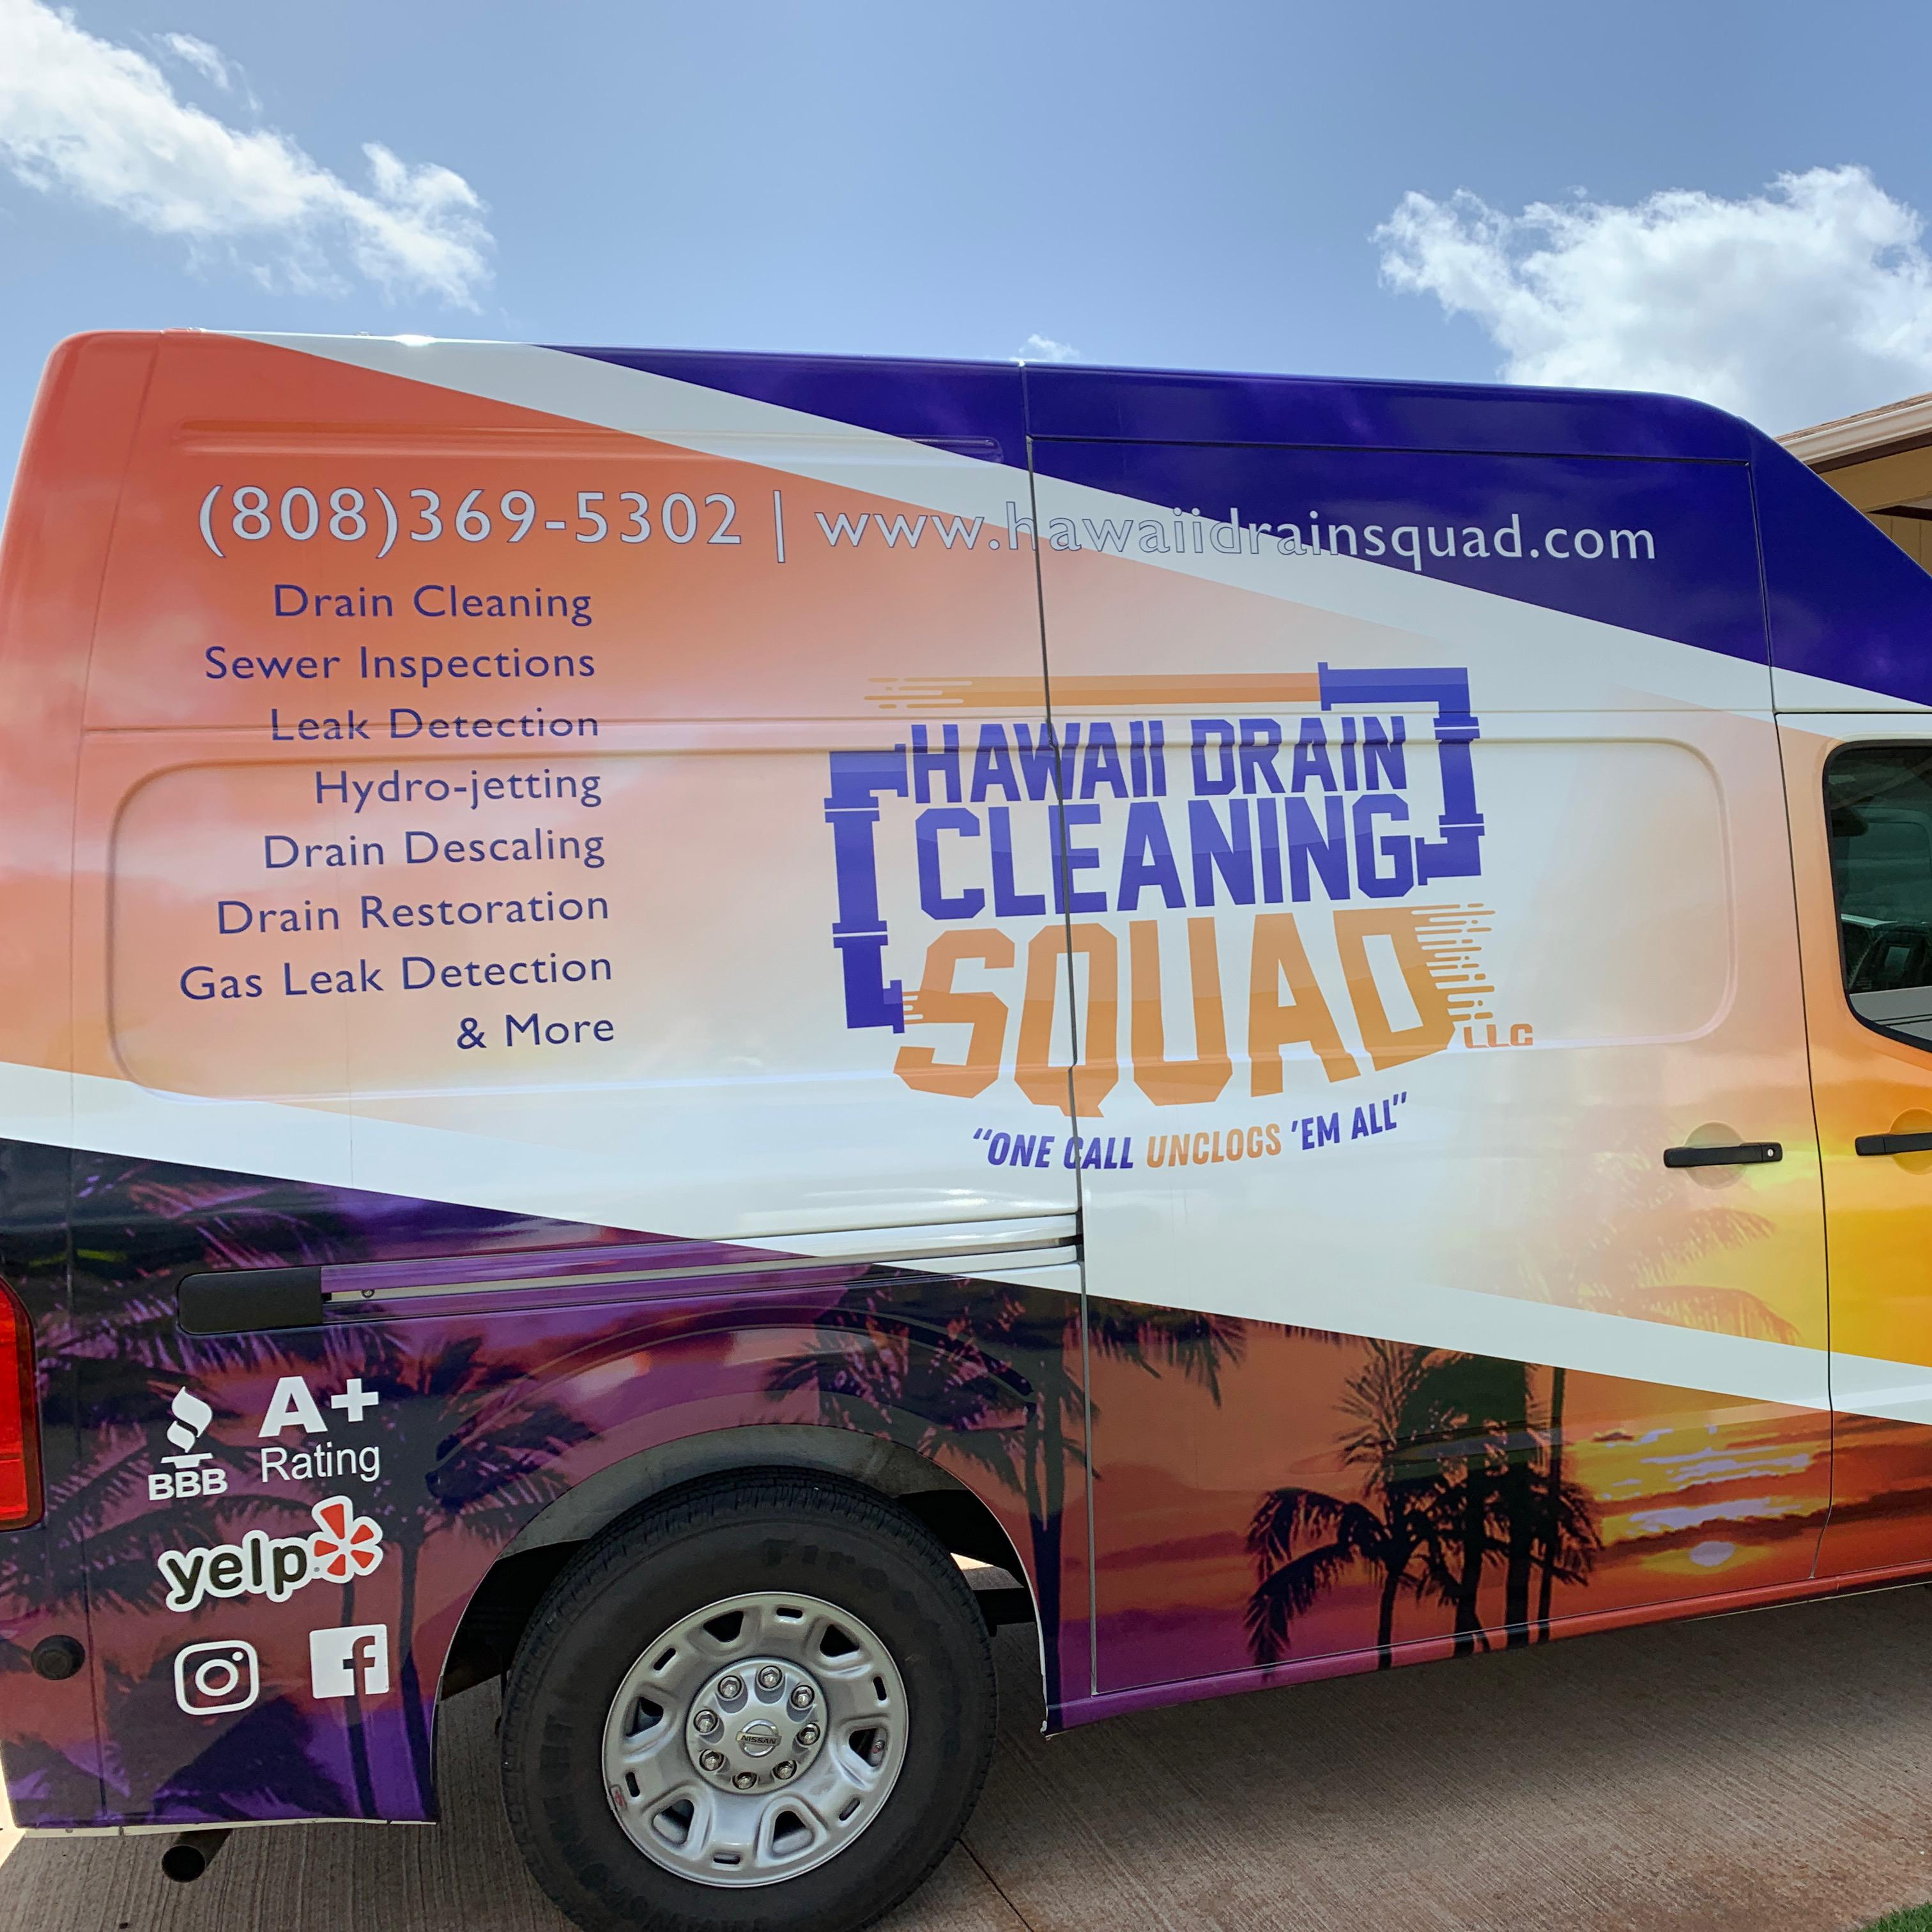 Hawaii Drain Cleaning Squad image 5